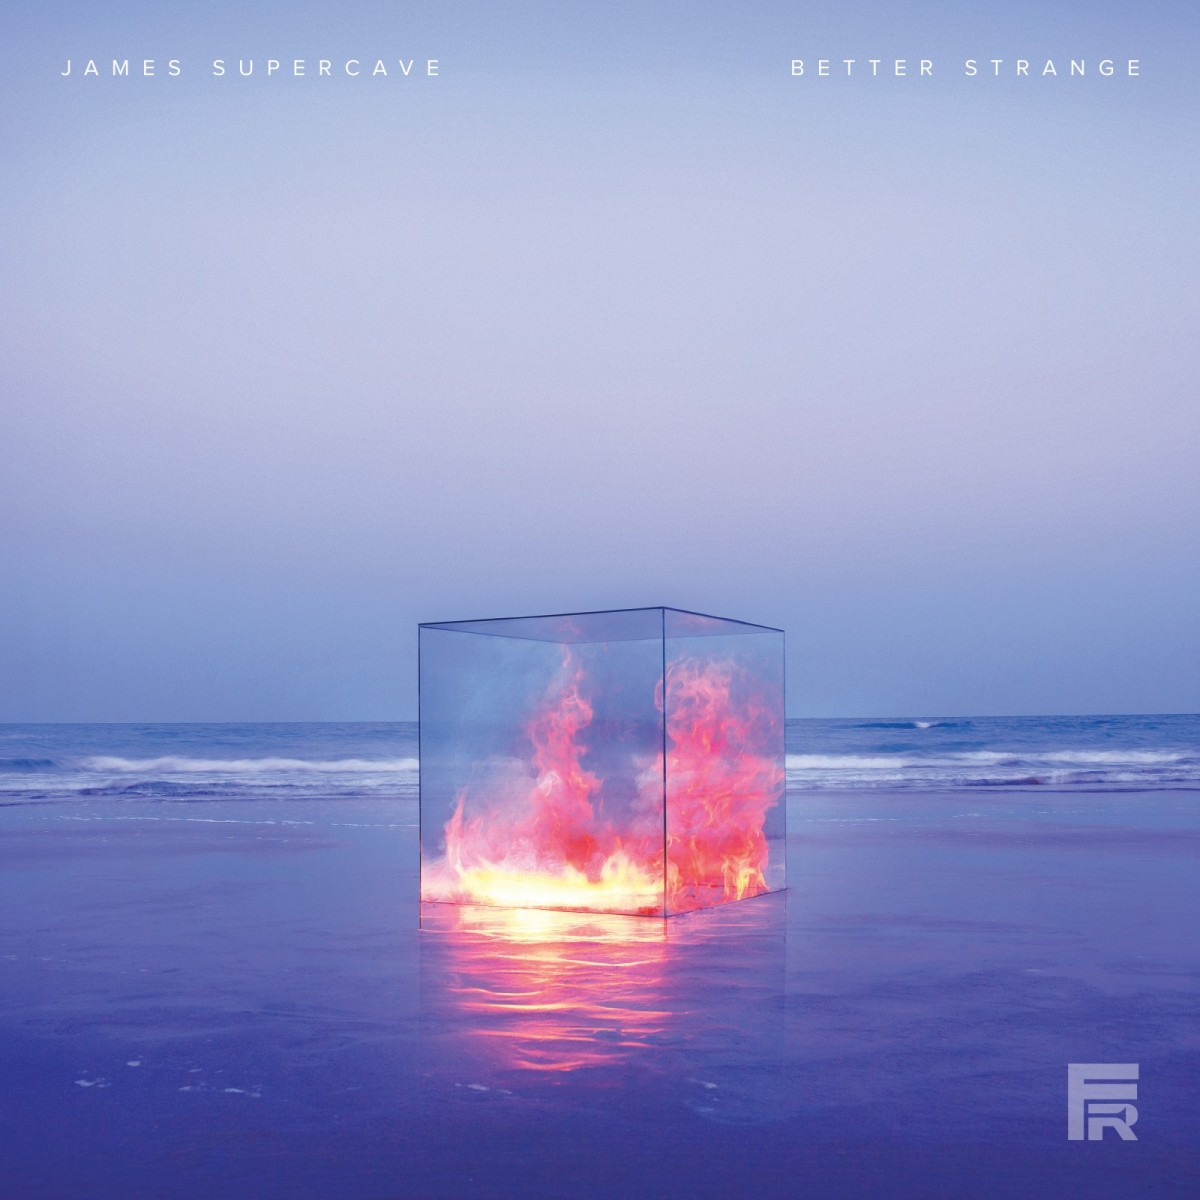 James-Supercave-Better-Strange-LP-cover-e1454527524803